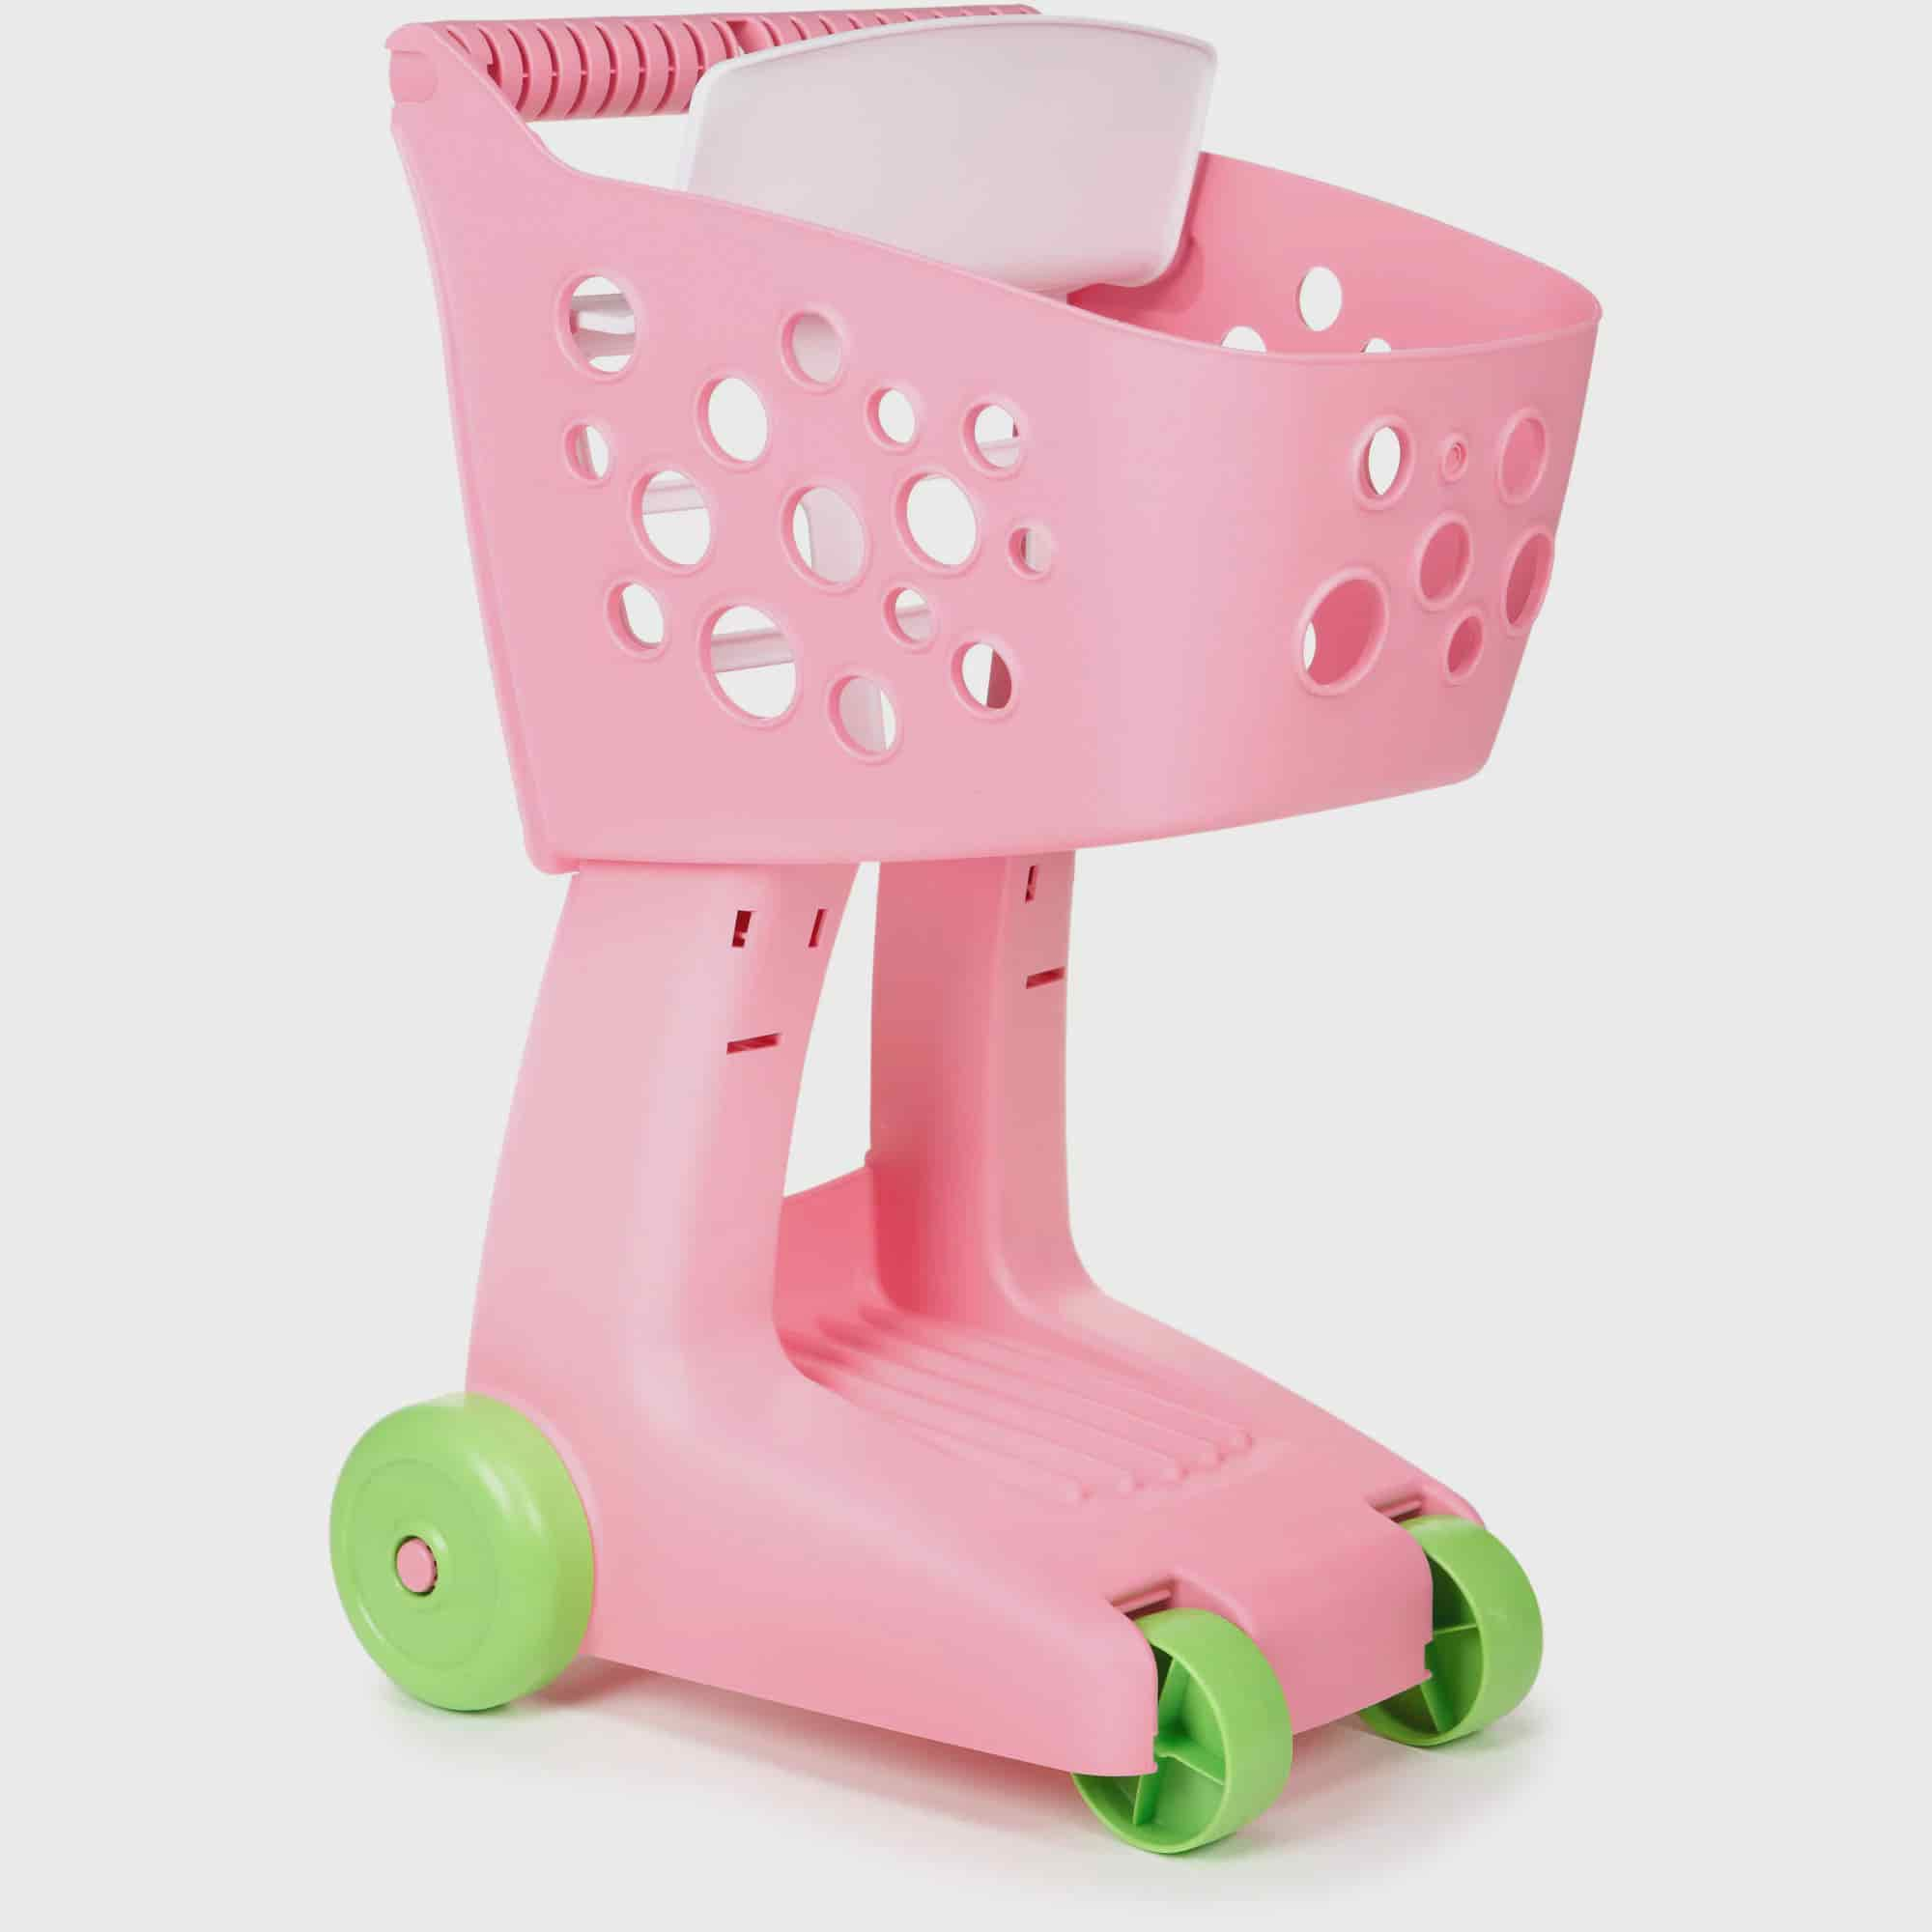 Little Tikes Lil Shopper Pink by MGA Entertainment